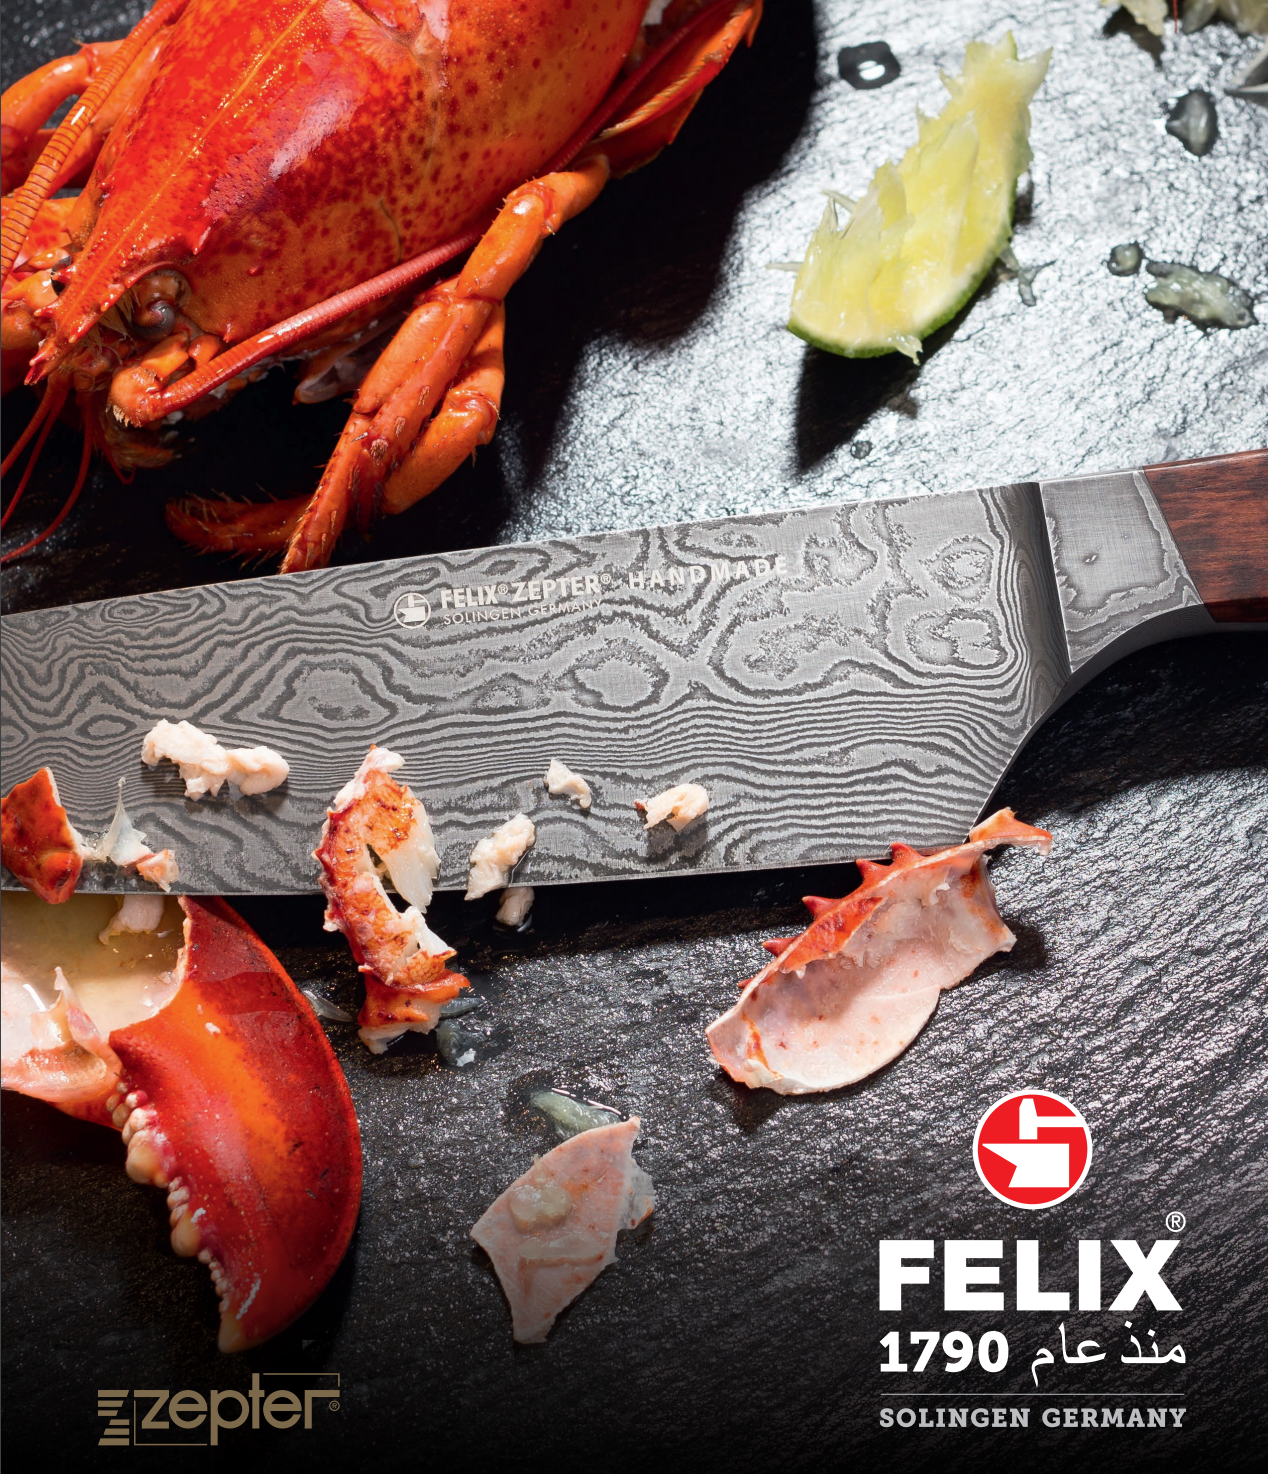 FELIX SOLINGEN Knives - Best German Knives In Dubai, UAE